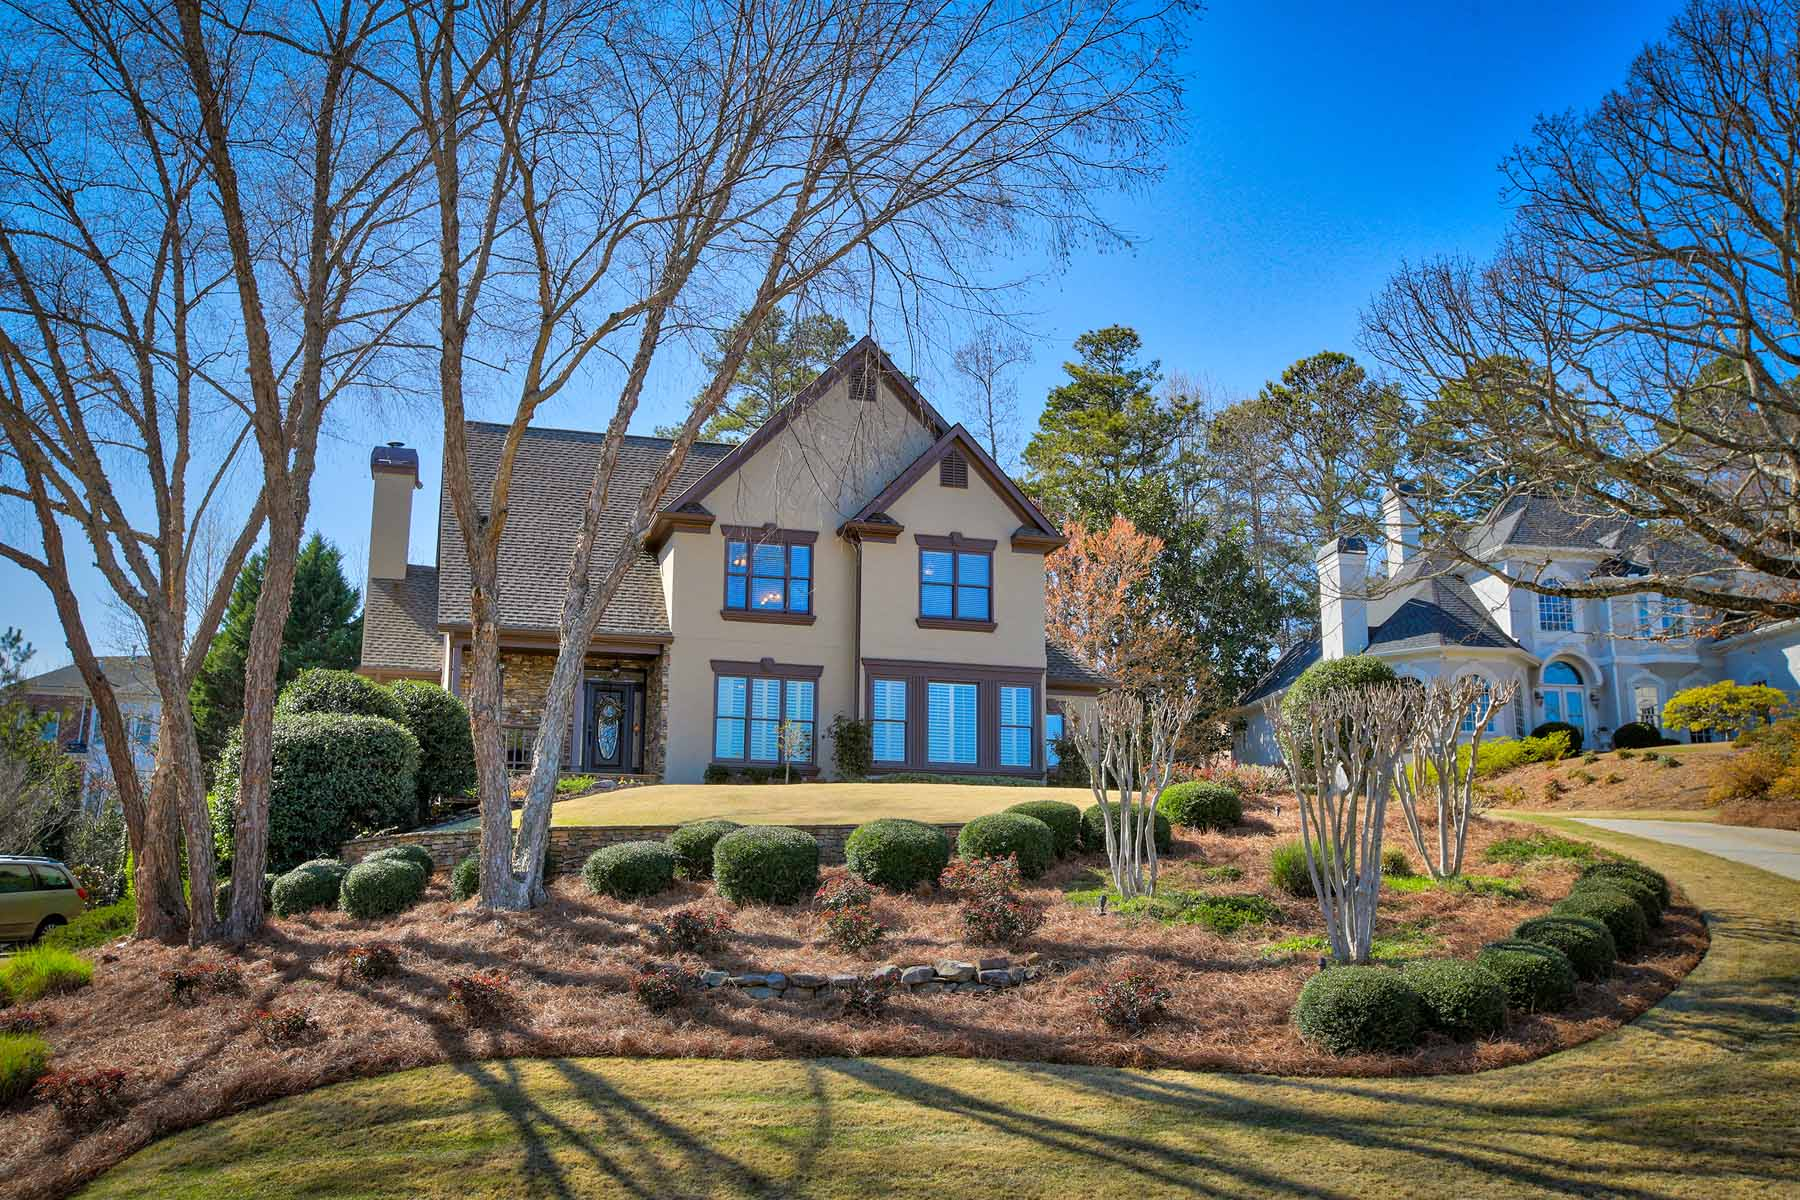 Single Family Home for Sale at Elegant European Traditional in St. Marlo 7635 Wentworth Drive Duluth, Georgia, 30097 United States